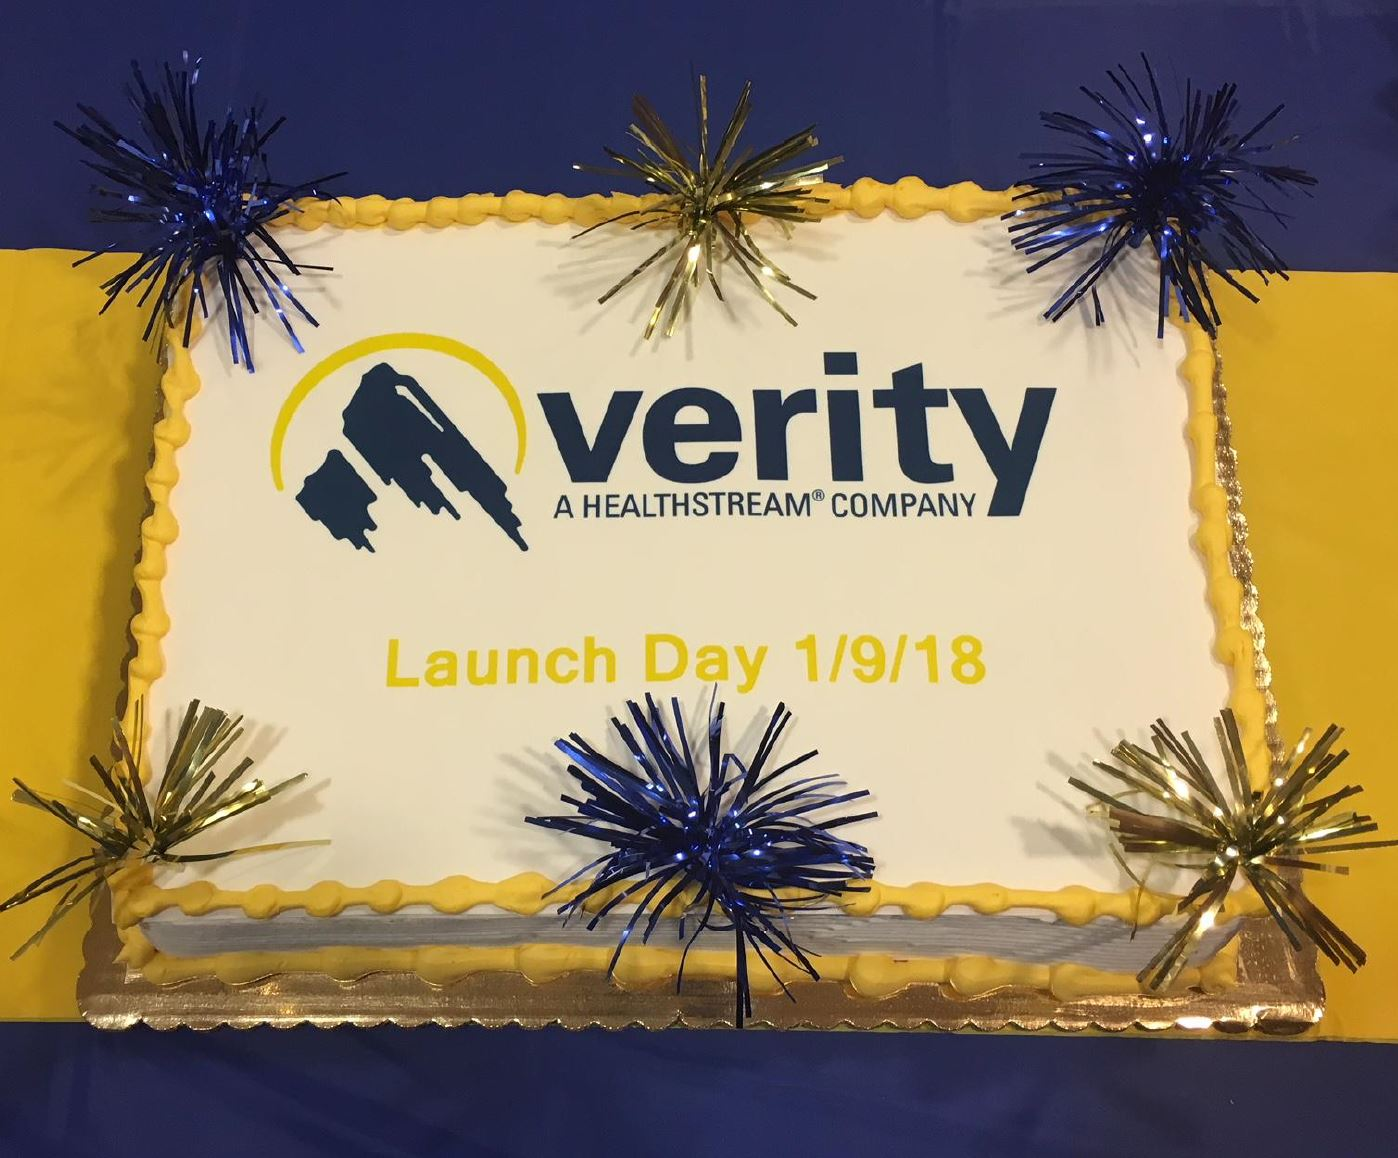 verity - cake for gallery (product launch)